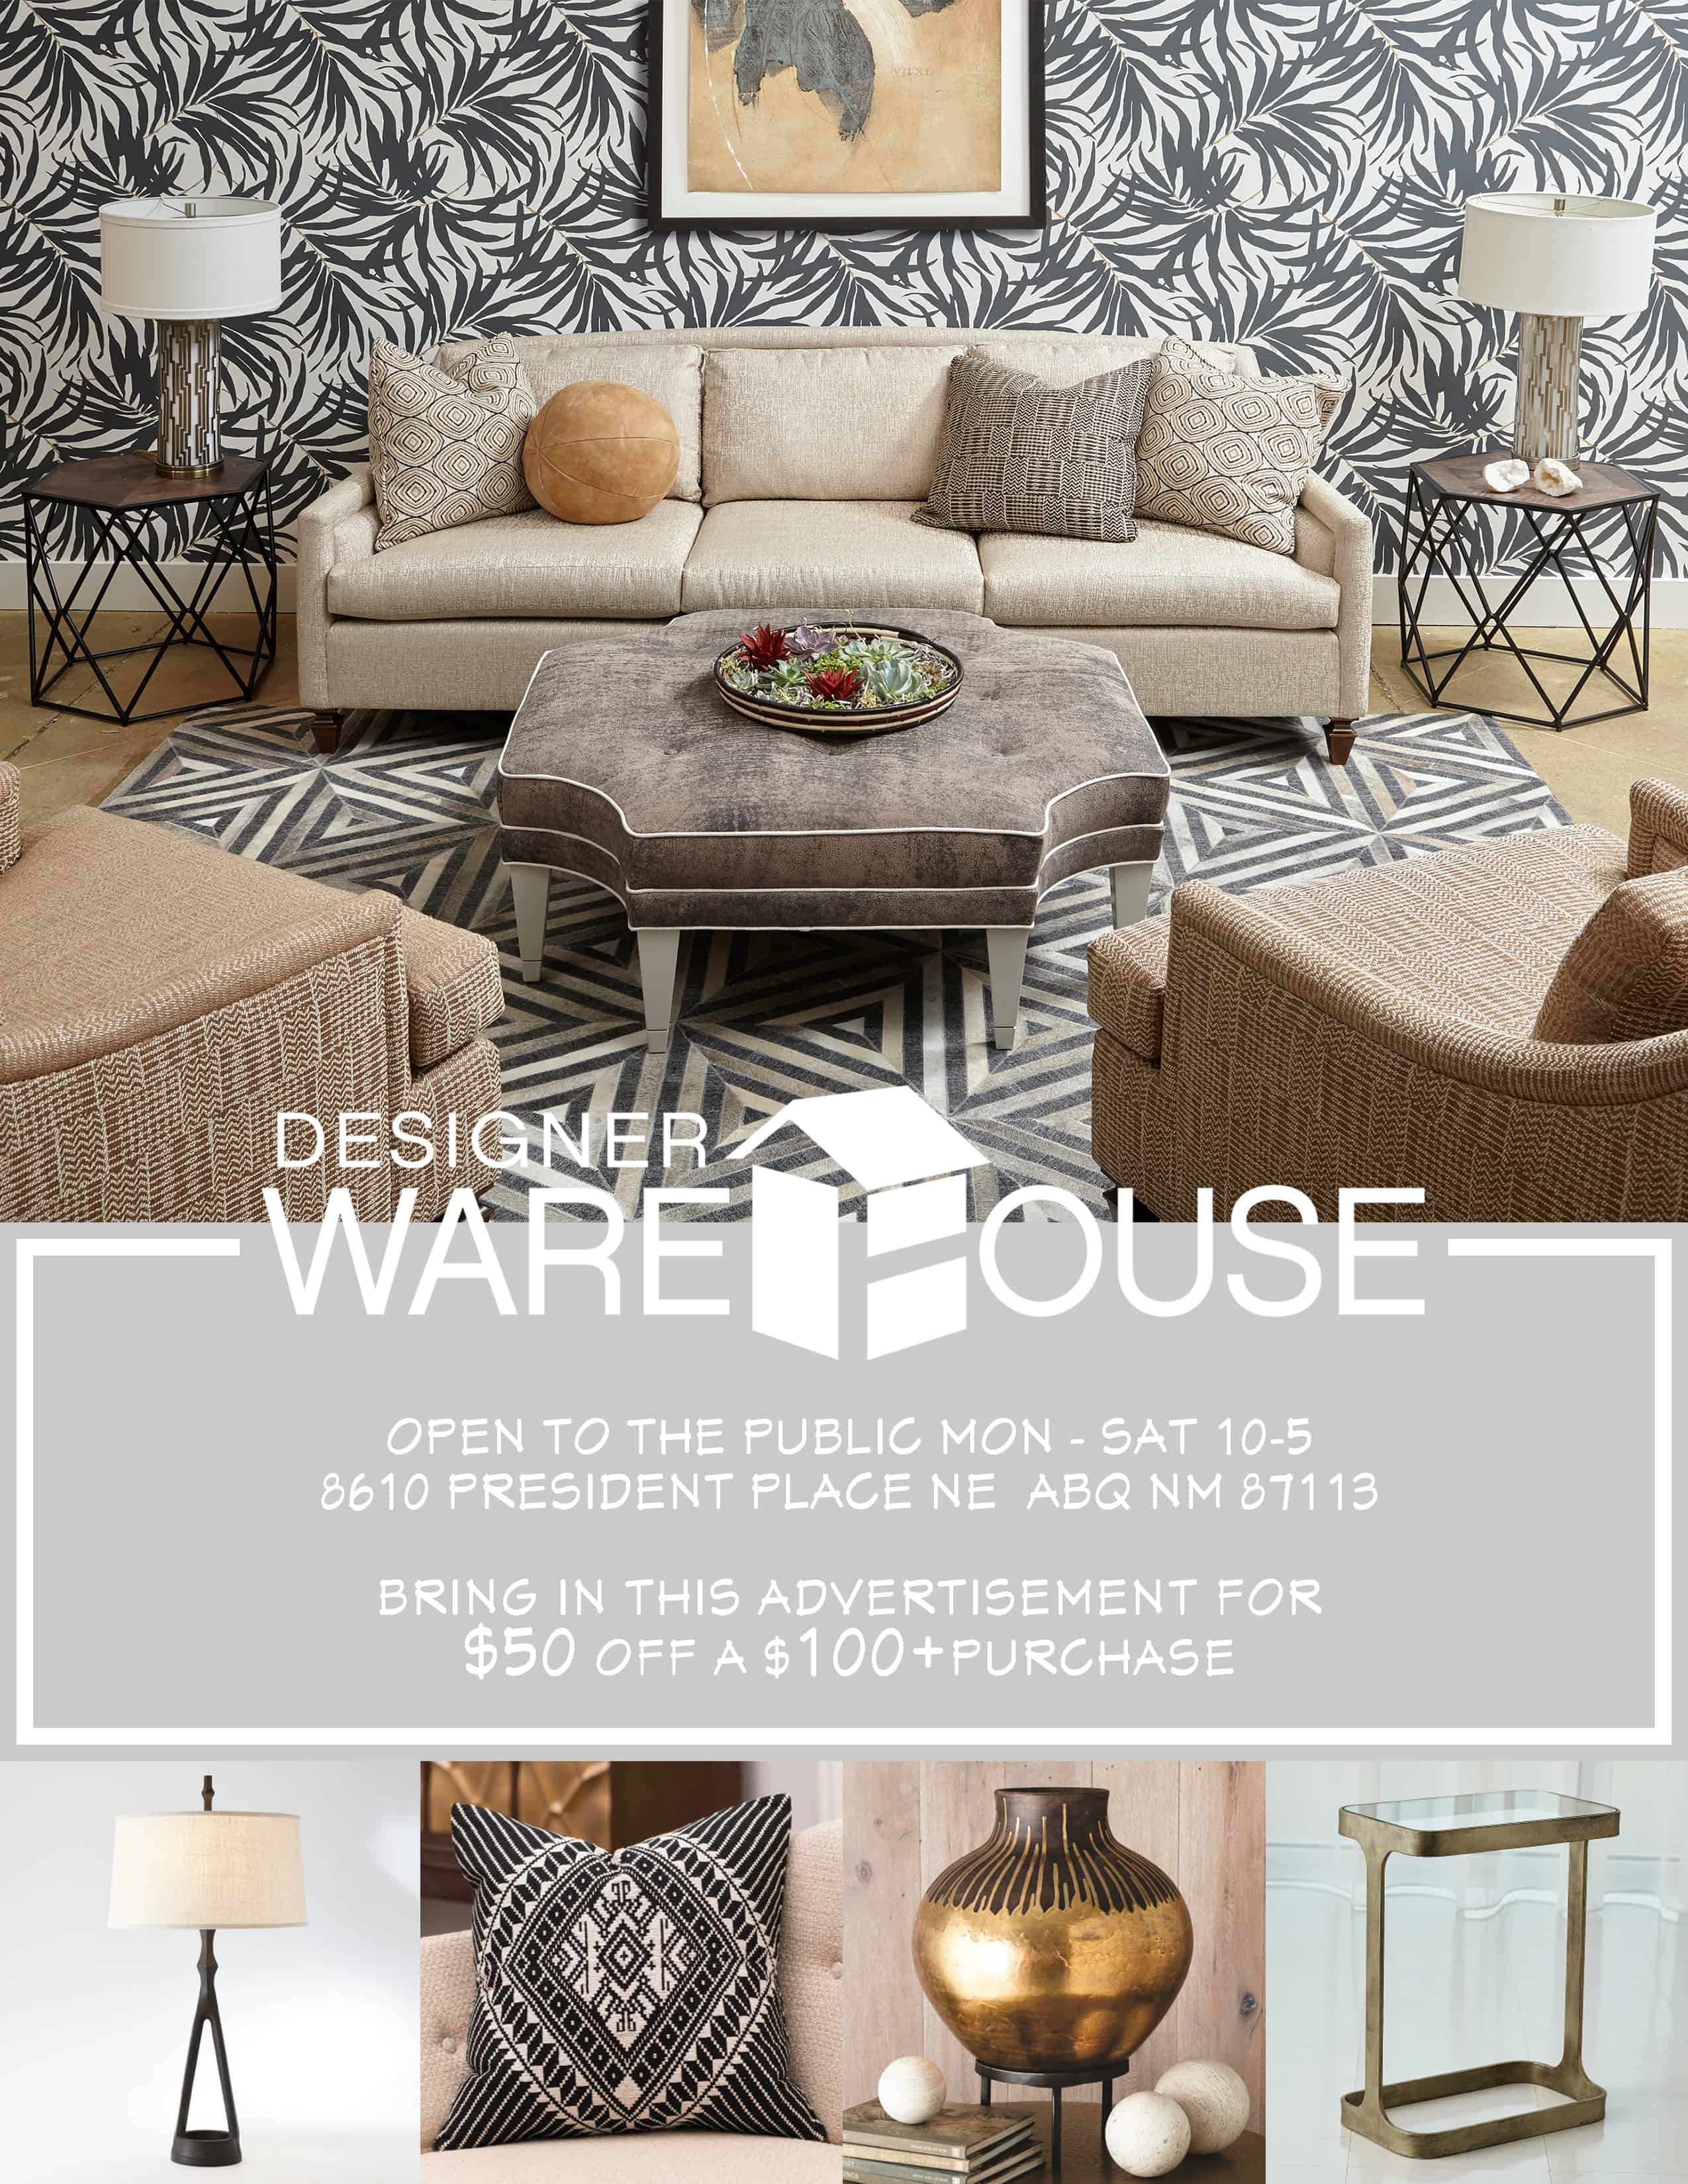 Delicieux The Owner Of Designer Warehouse, Is One Of The Top Hotel Interior Designers  And A Lifelong Resident Of Albuquerque. In Her Pursuits Over The Past 25  Years ...